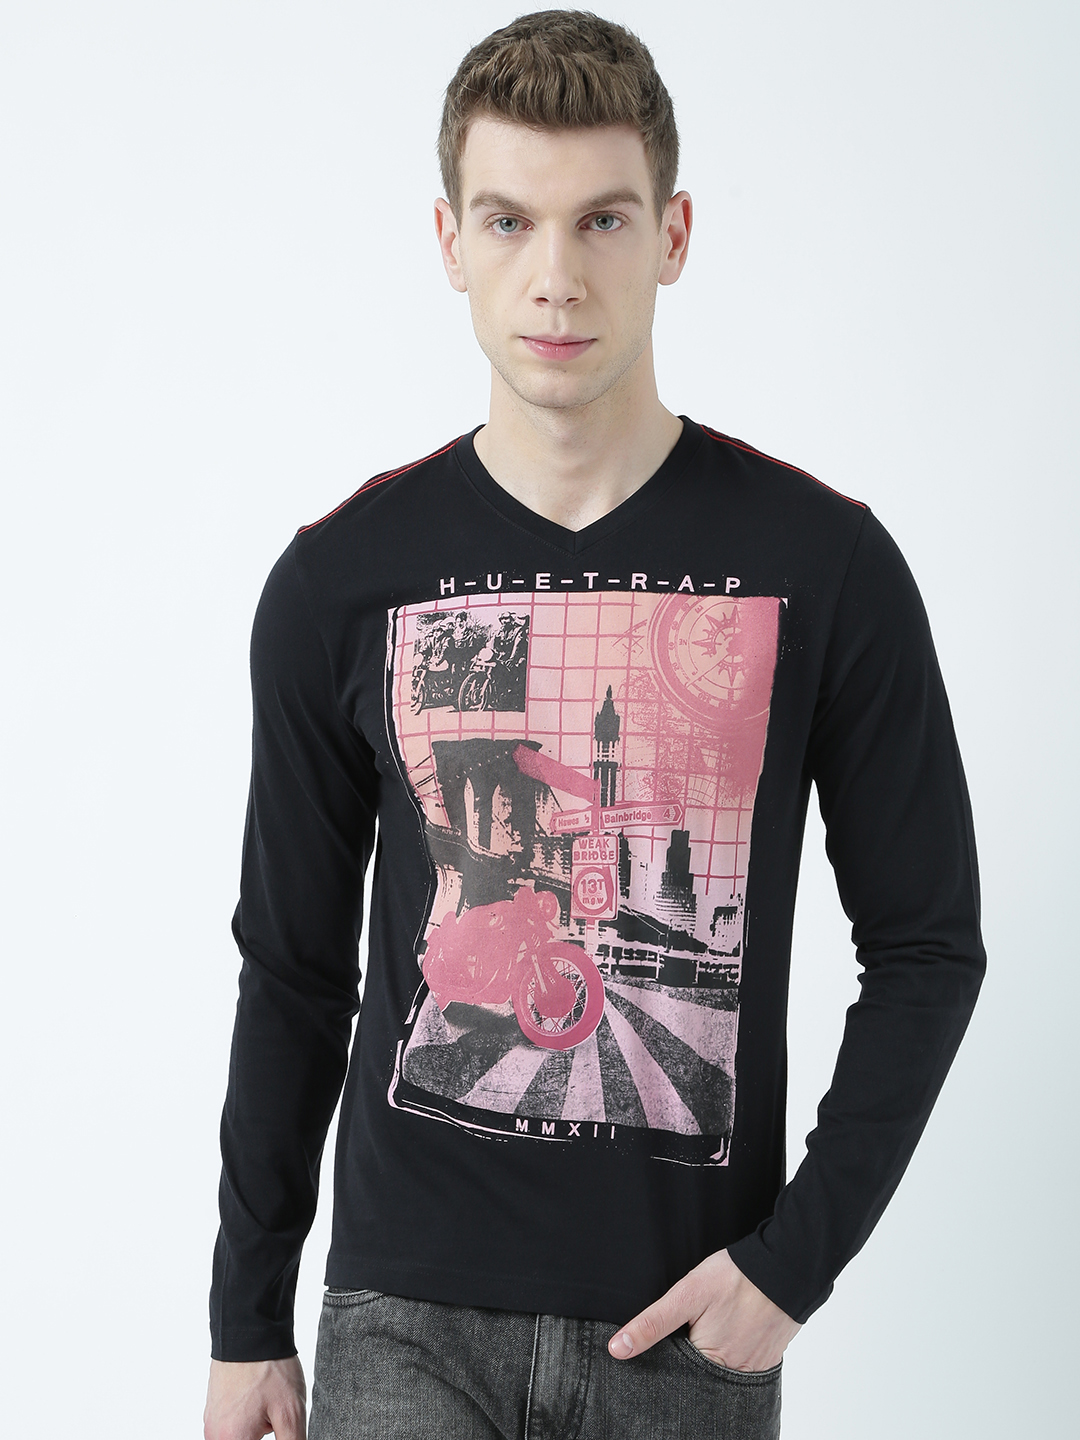 HUETRAP | Huetrap Mens Vintage or nothing Random T Shirt with old elements